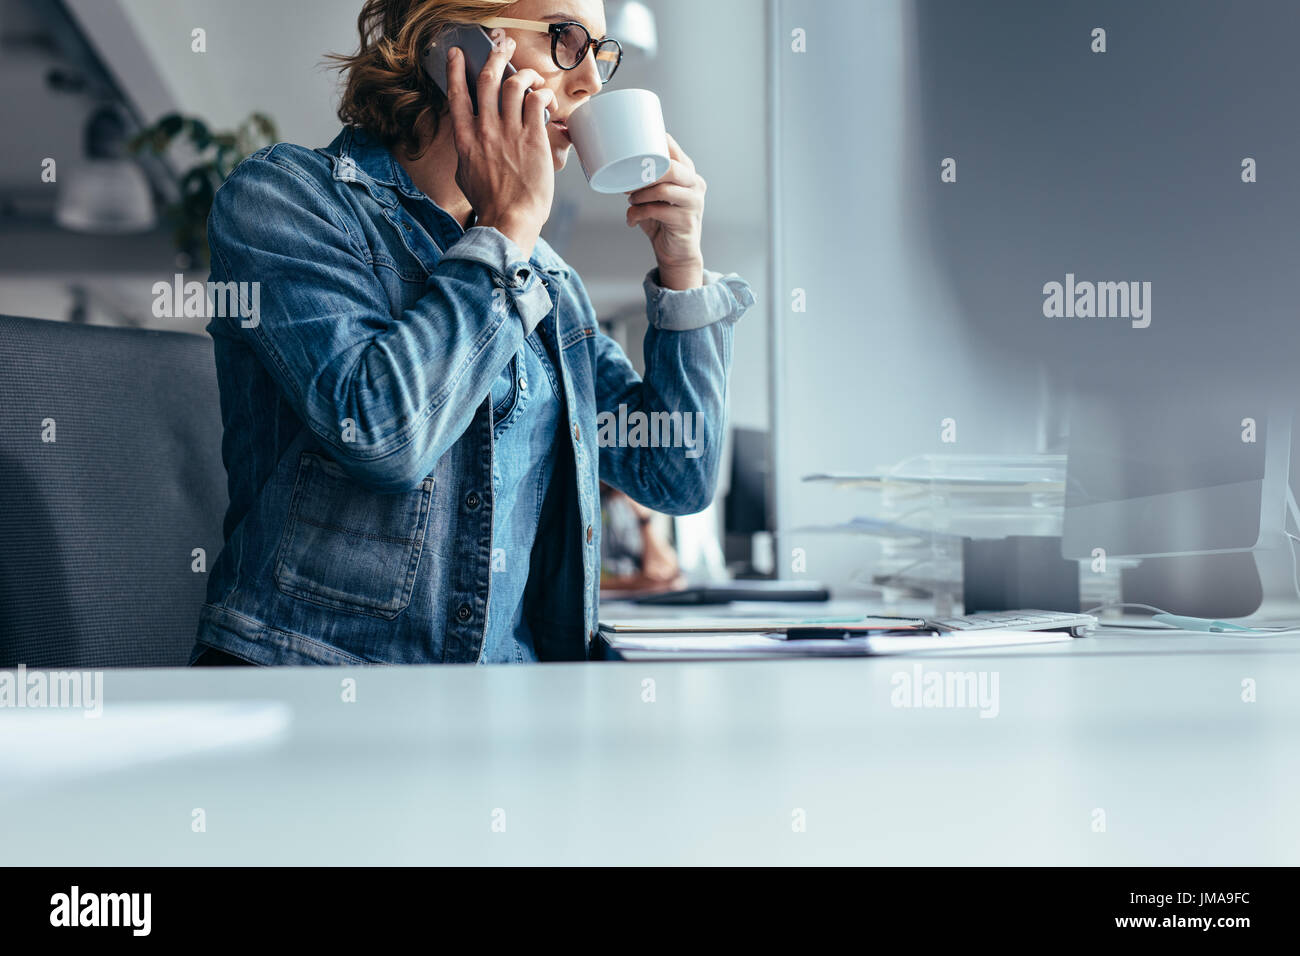 Female at work drinking coffee and talking on mobile phone. Young businesswoman at work making phone call and having coffee. - Stock Image